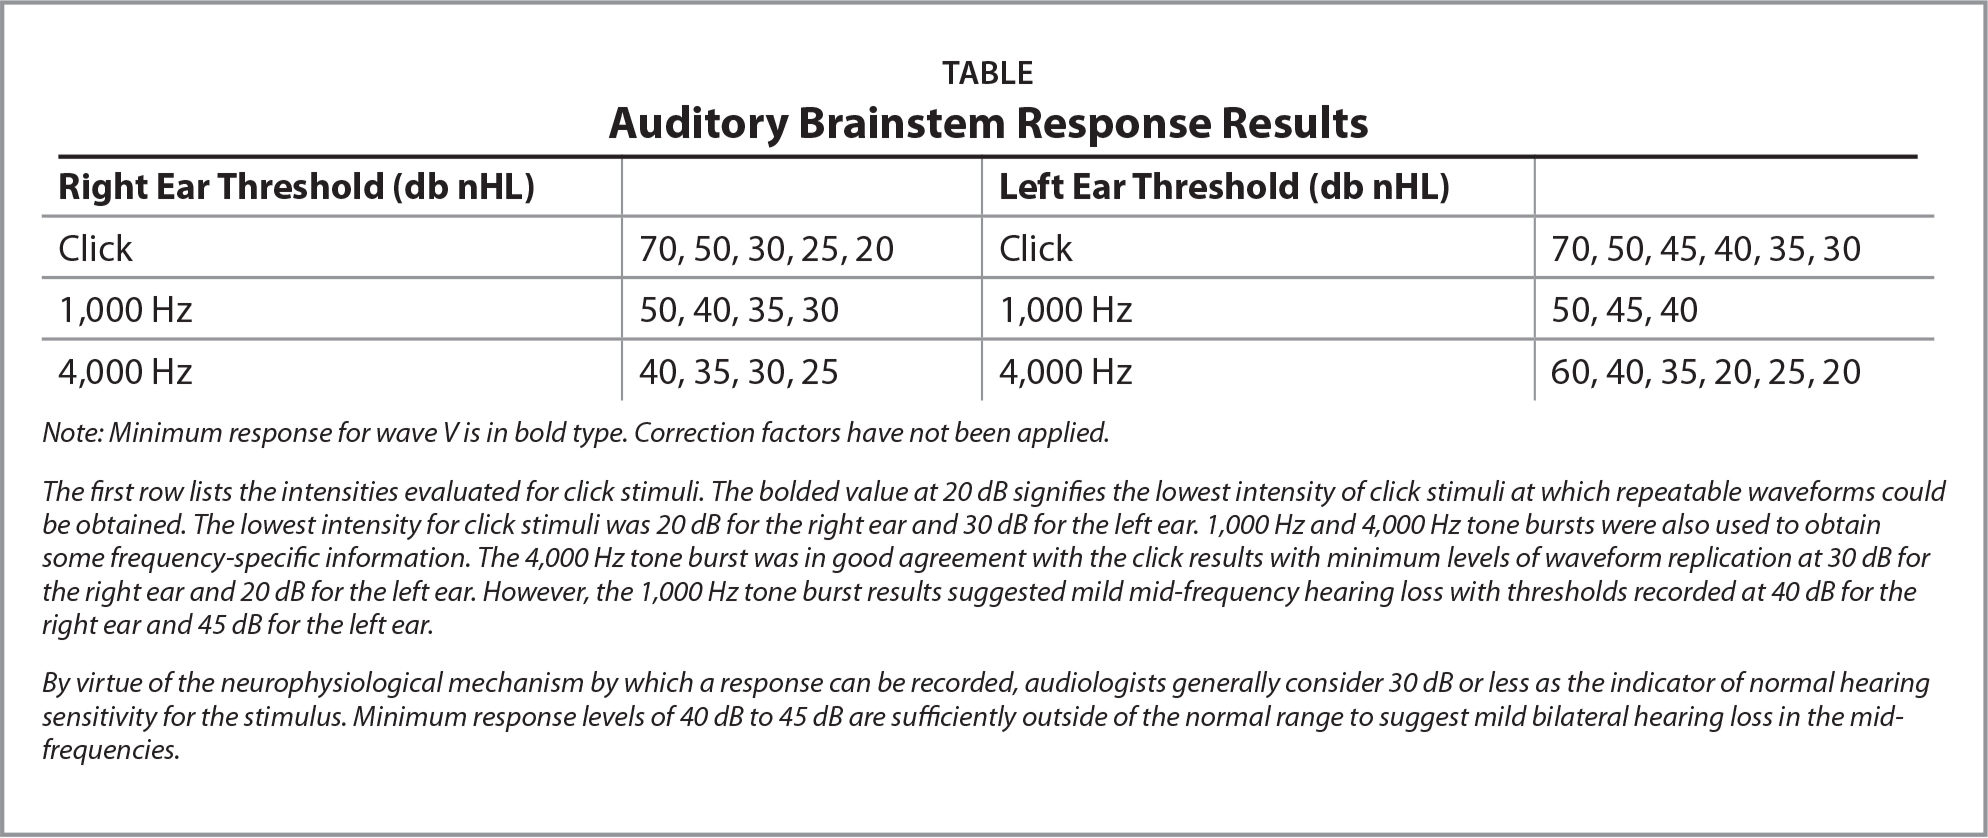 Auditory Brainstem Response Results